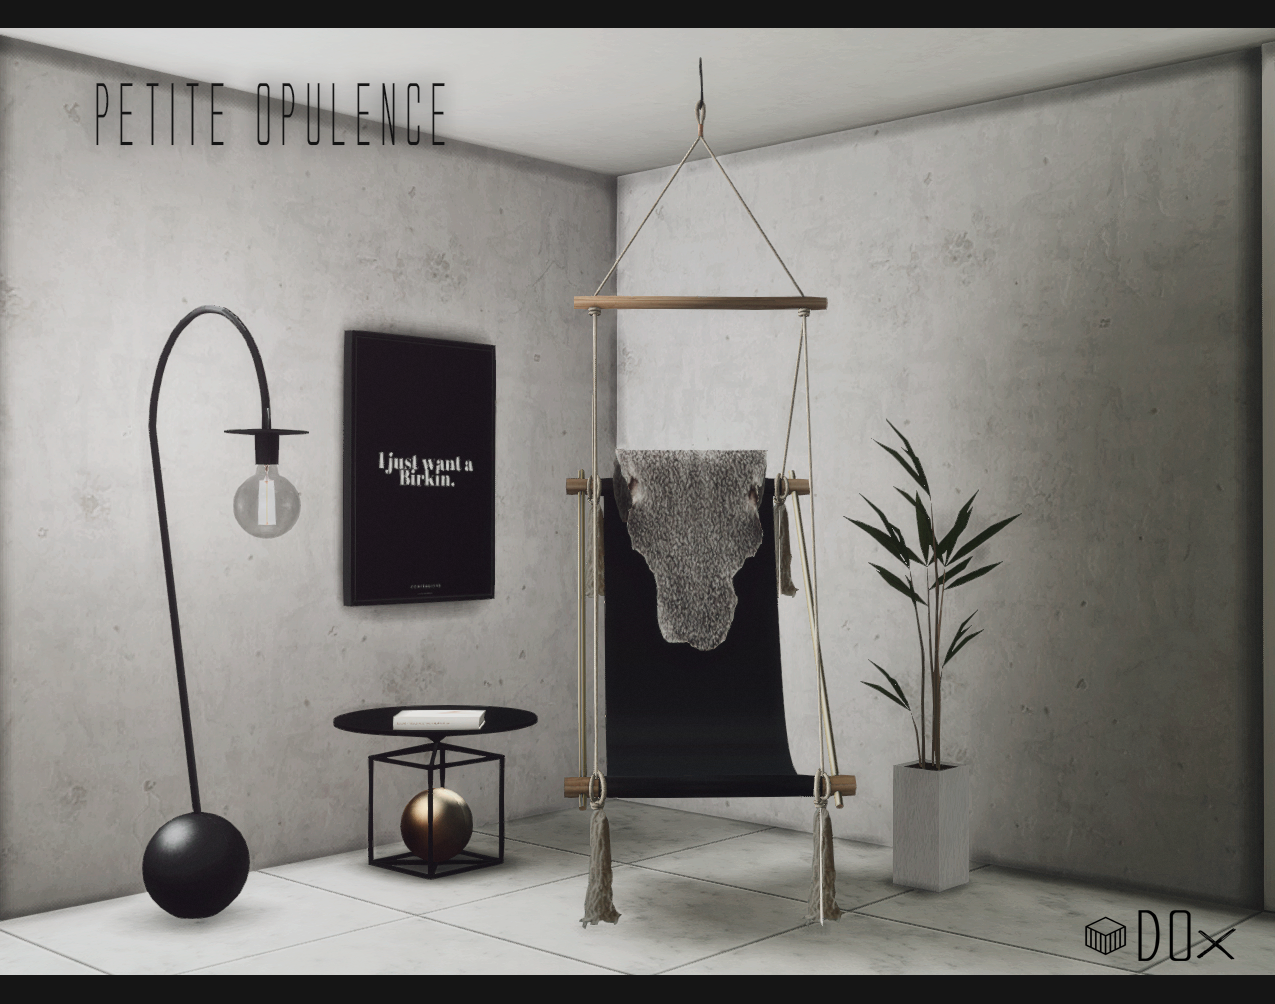 Hanging Chair The Sims 4 Plastic Tables And Chairs Dox 7 Petite Opulence Set Patreon Exclusive This Includes Ovis